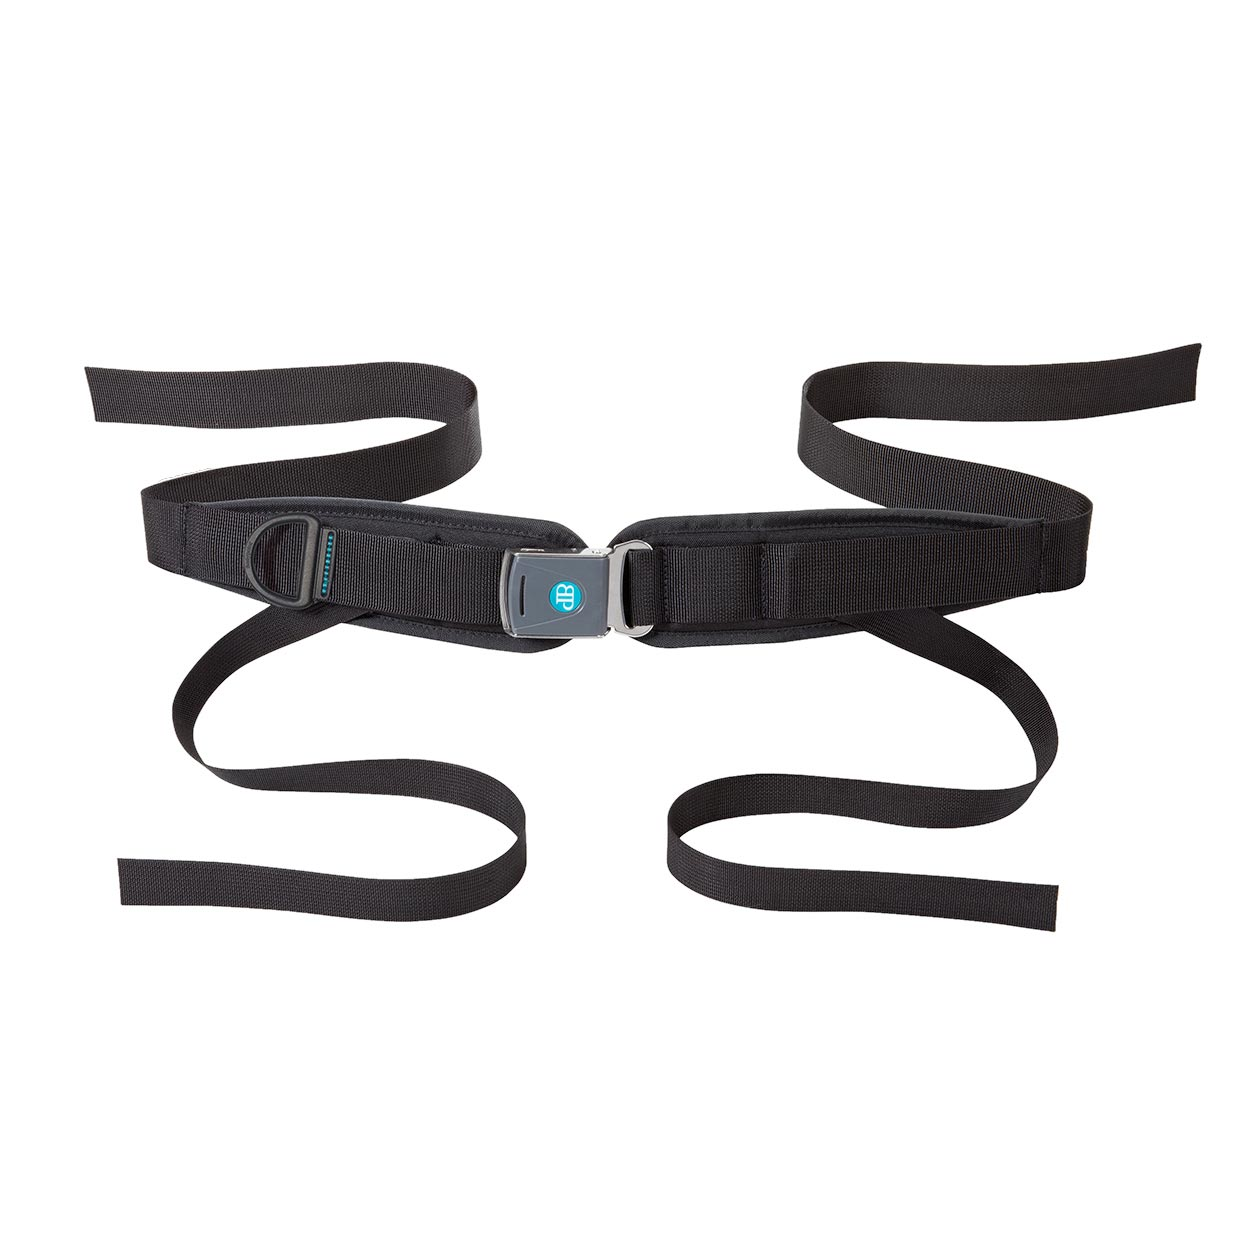 Bodypoint sub-ASIS compatible center-pull four point padded hip belt with Rehab Latch Buckle